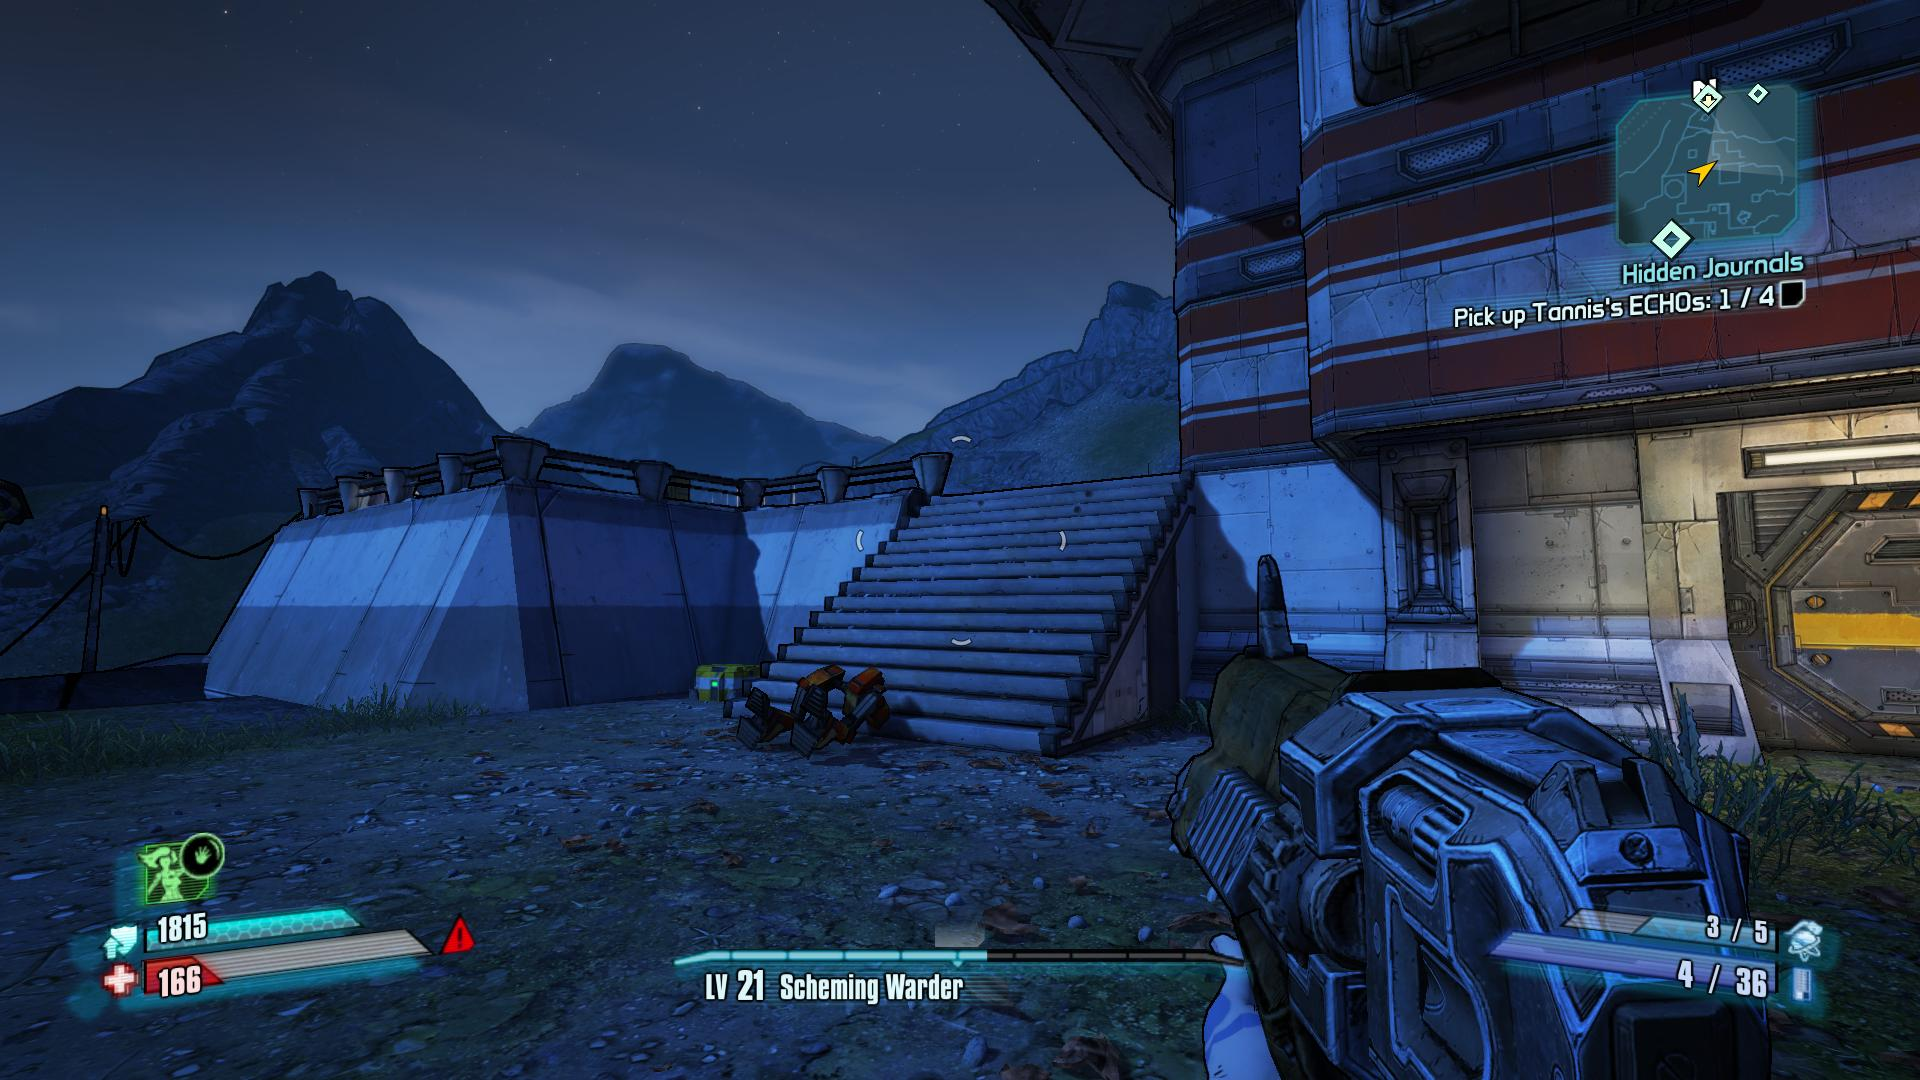 Borderlands 2 Guide Finding The Echos In The Hidden Journals